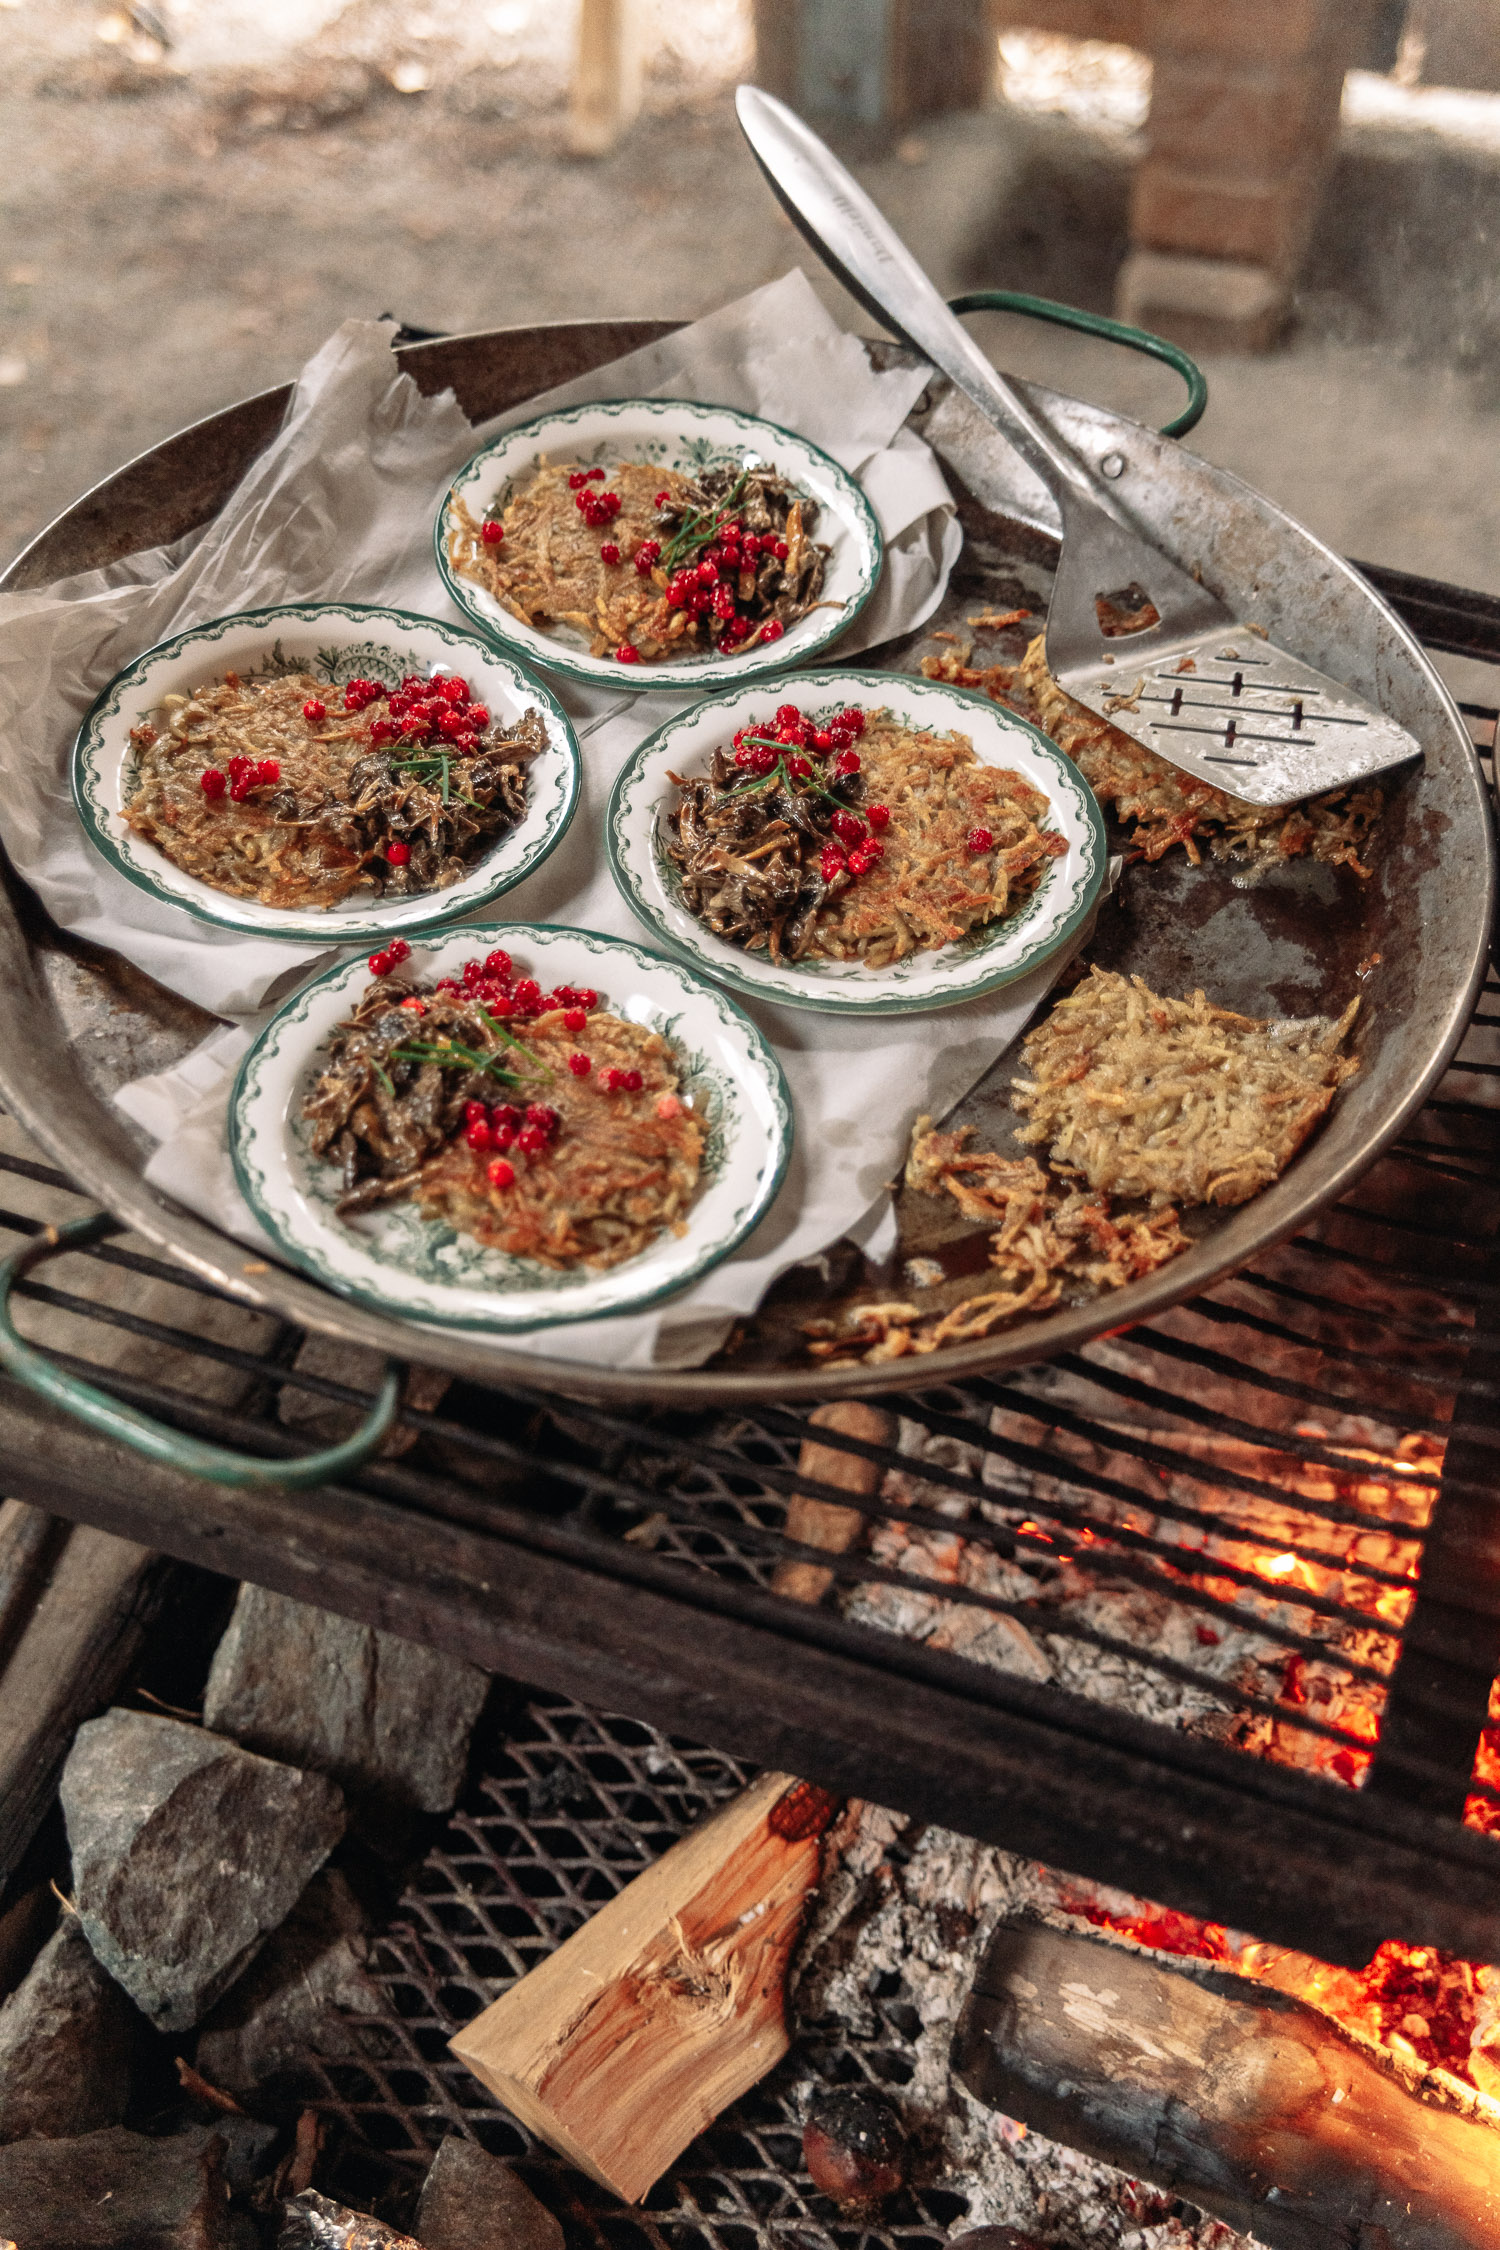 Hash browns, mushrooms and lingonberries are cooked over an open fire in Brevens Bruk, Örebro.